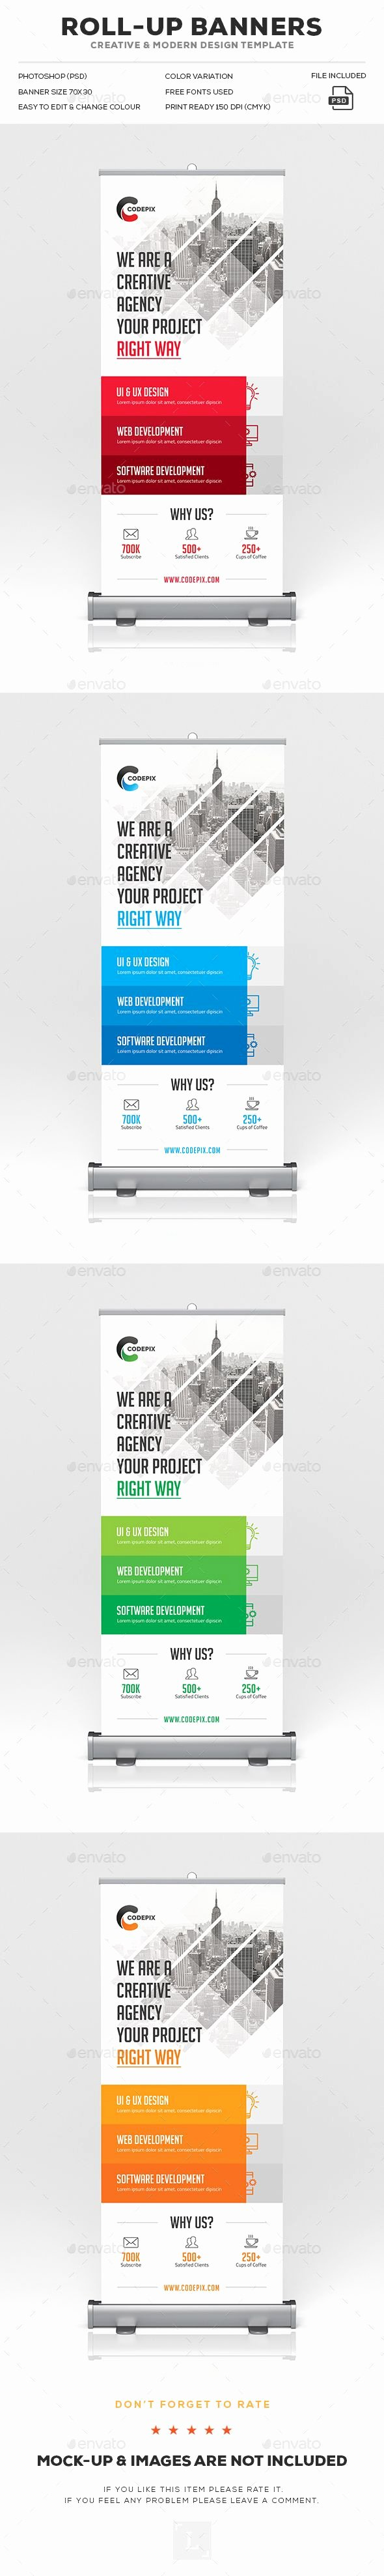 Roll Up Banners Template Inspirational Roll Up Banner